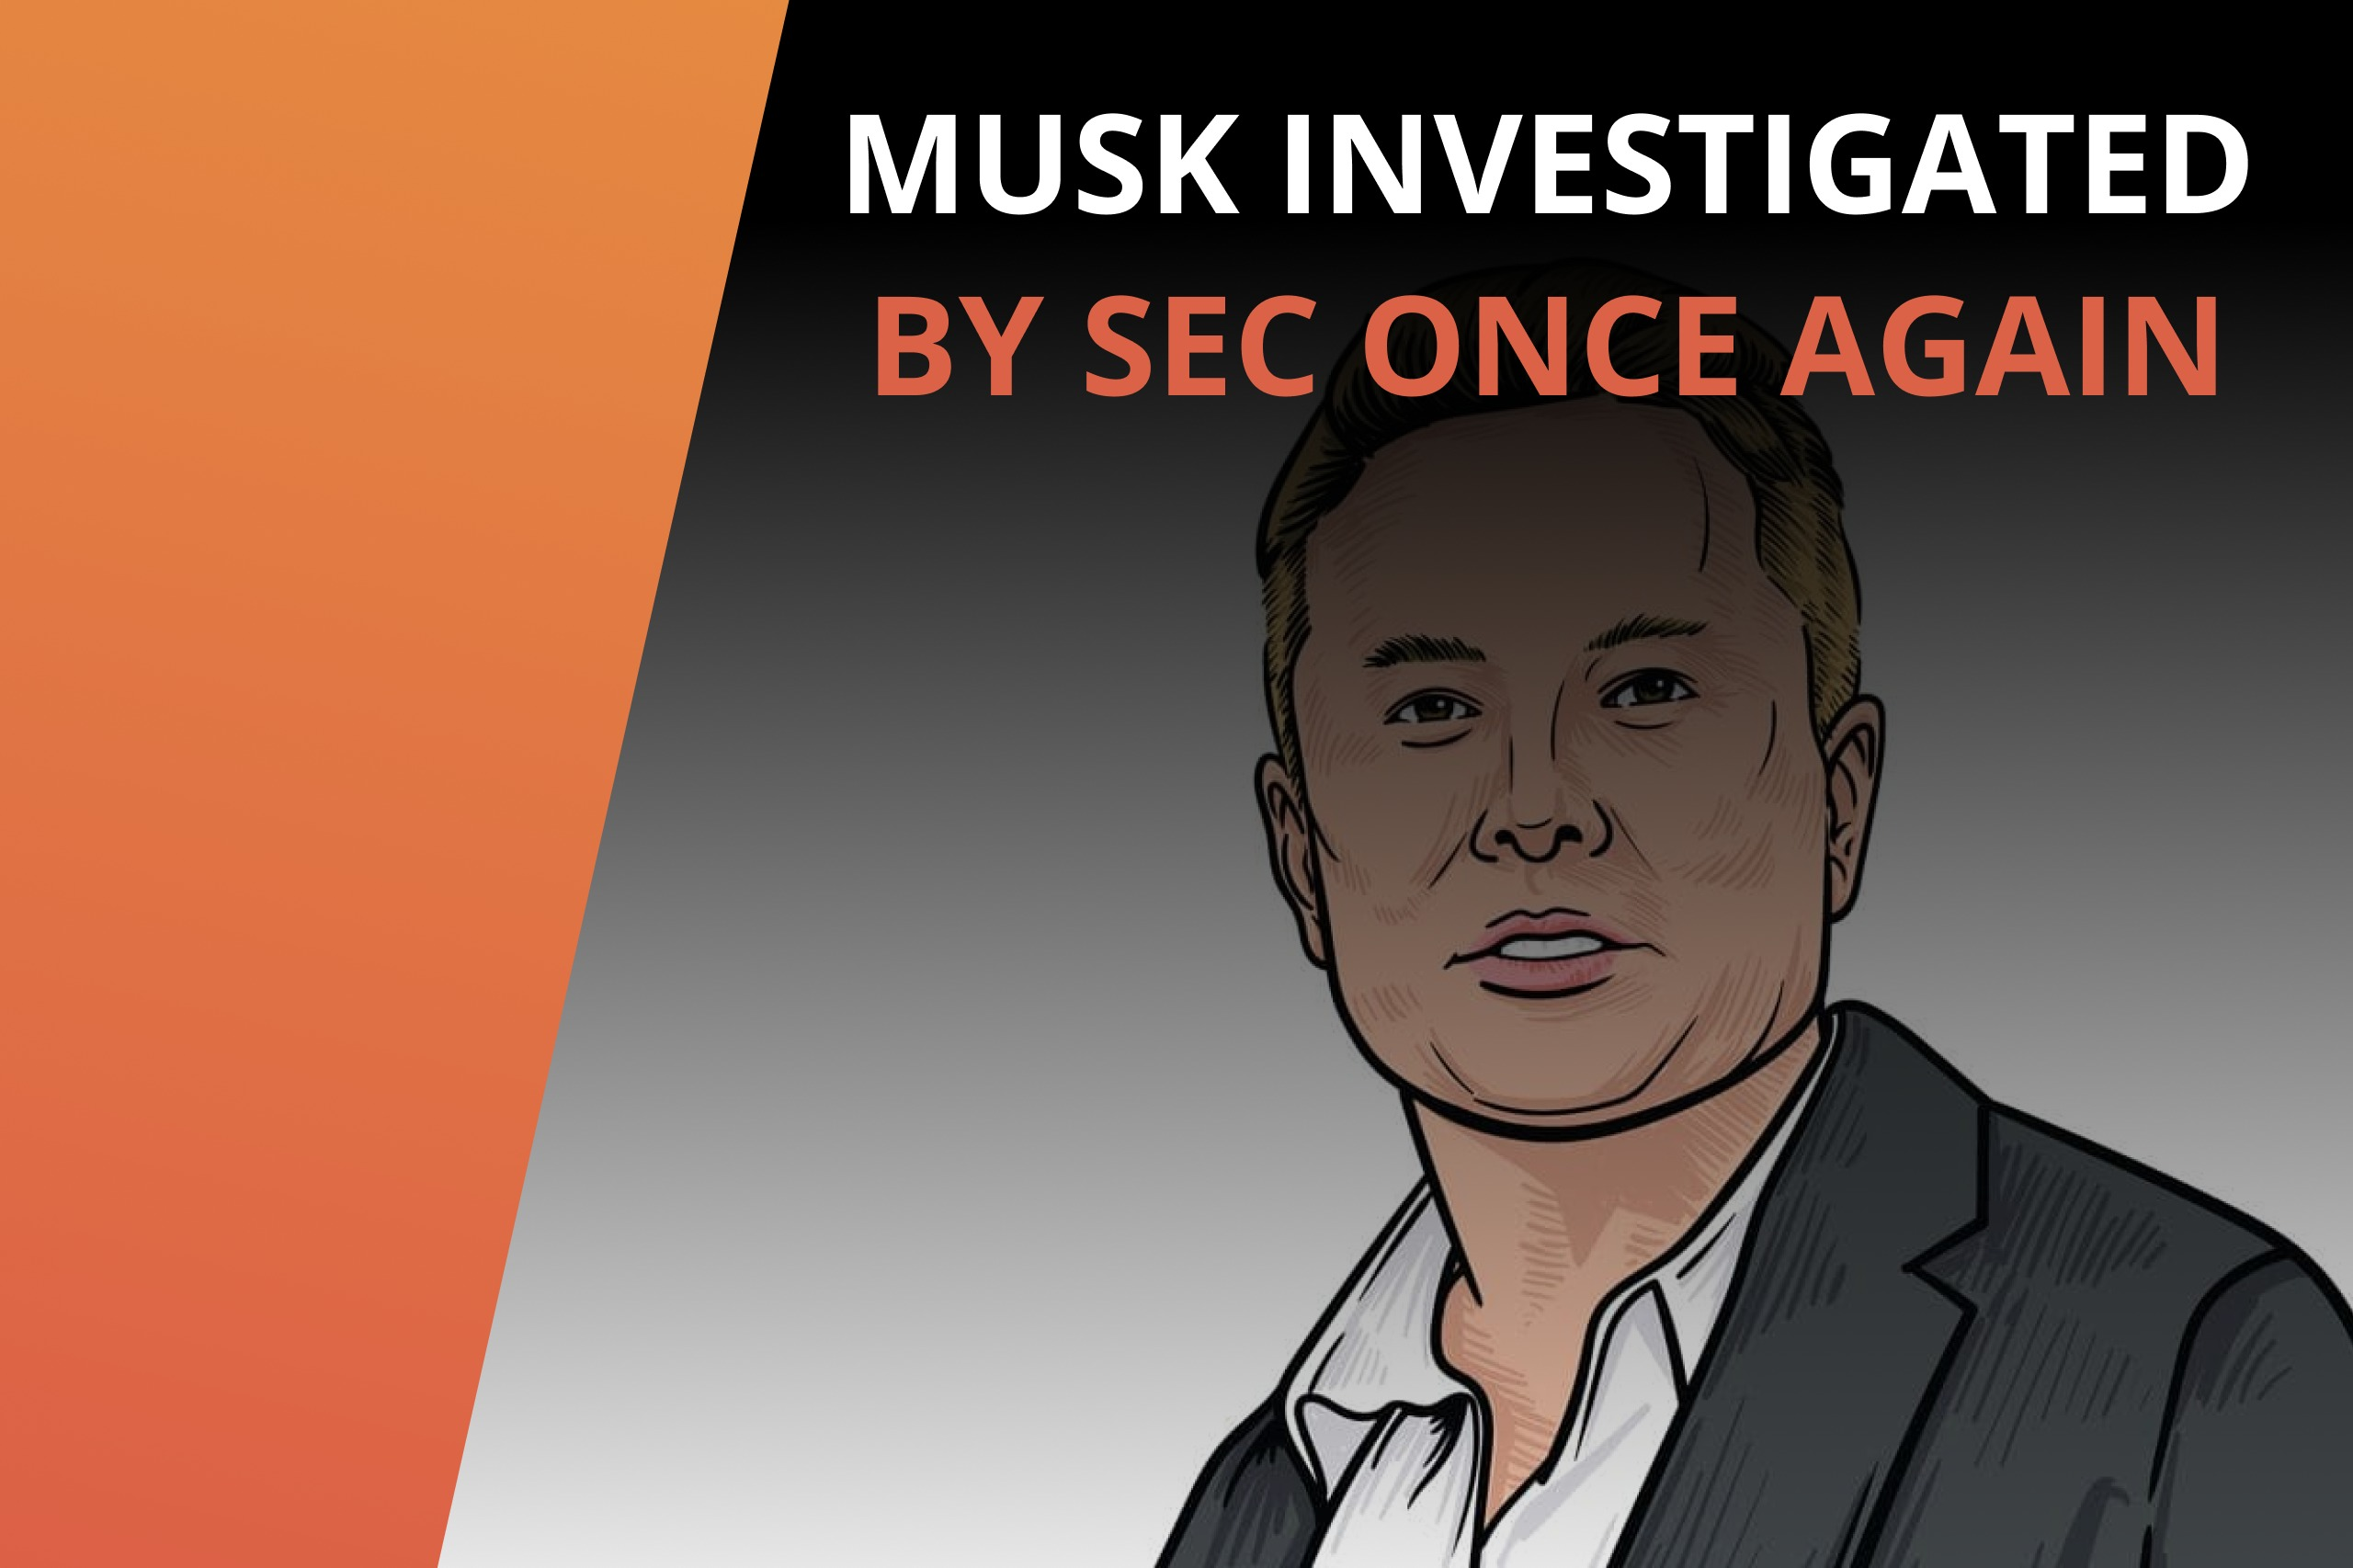 SEC is investigating Musk for his tweetson Dogecoin